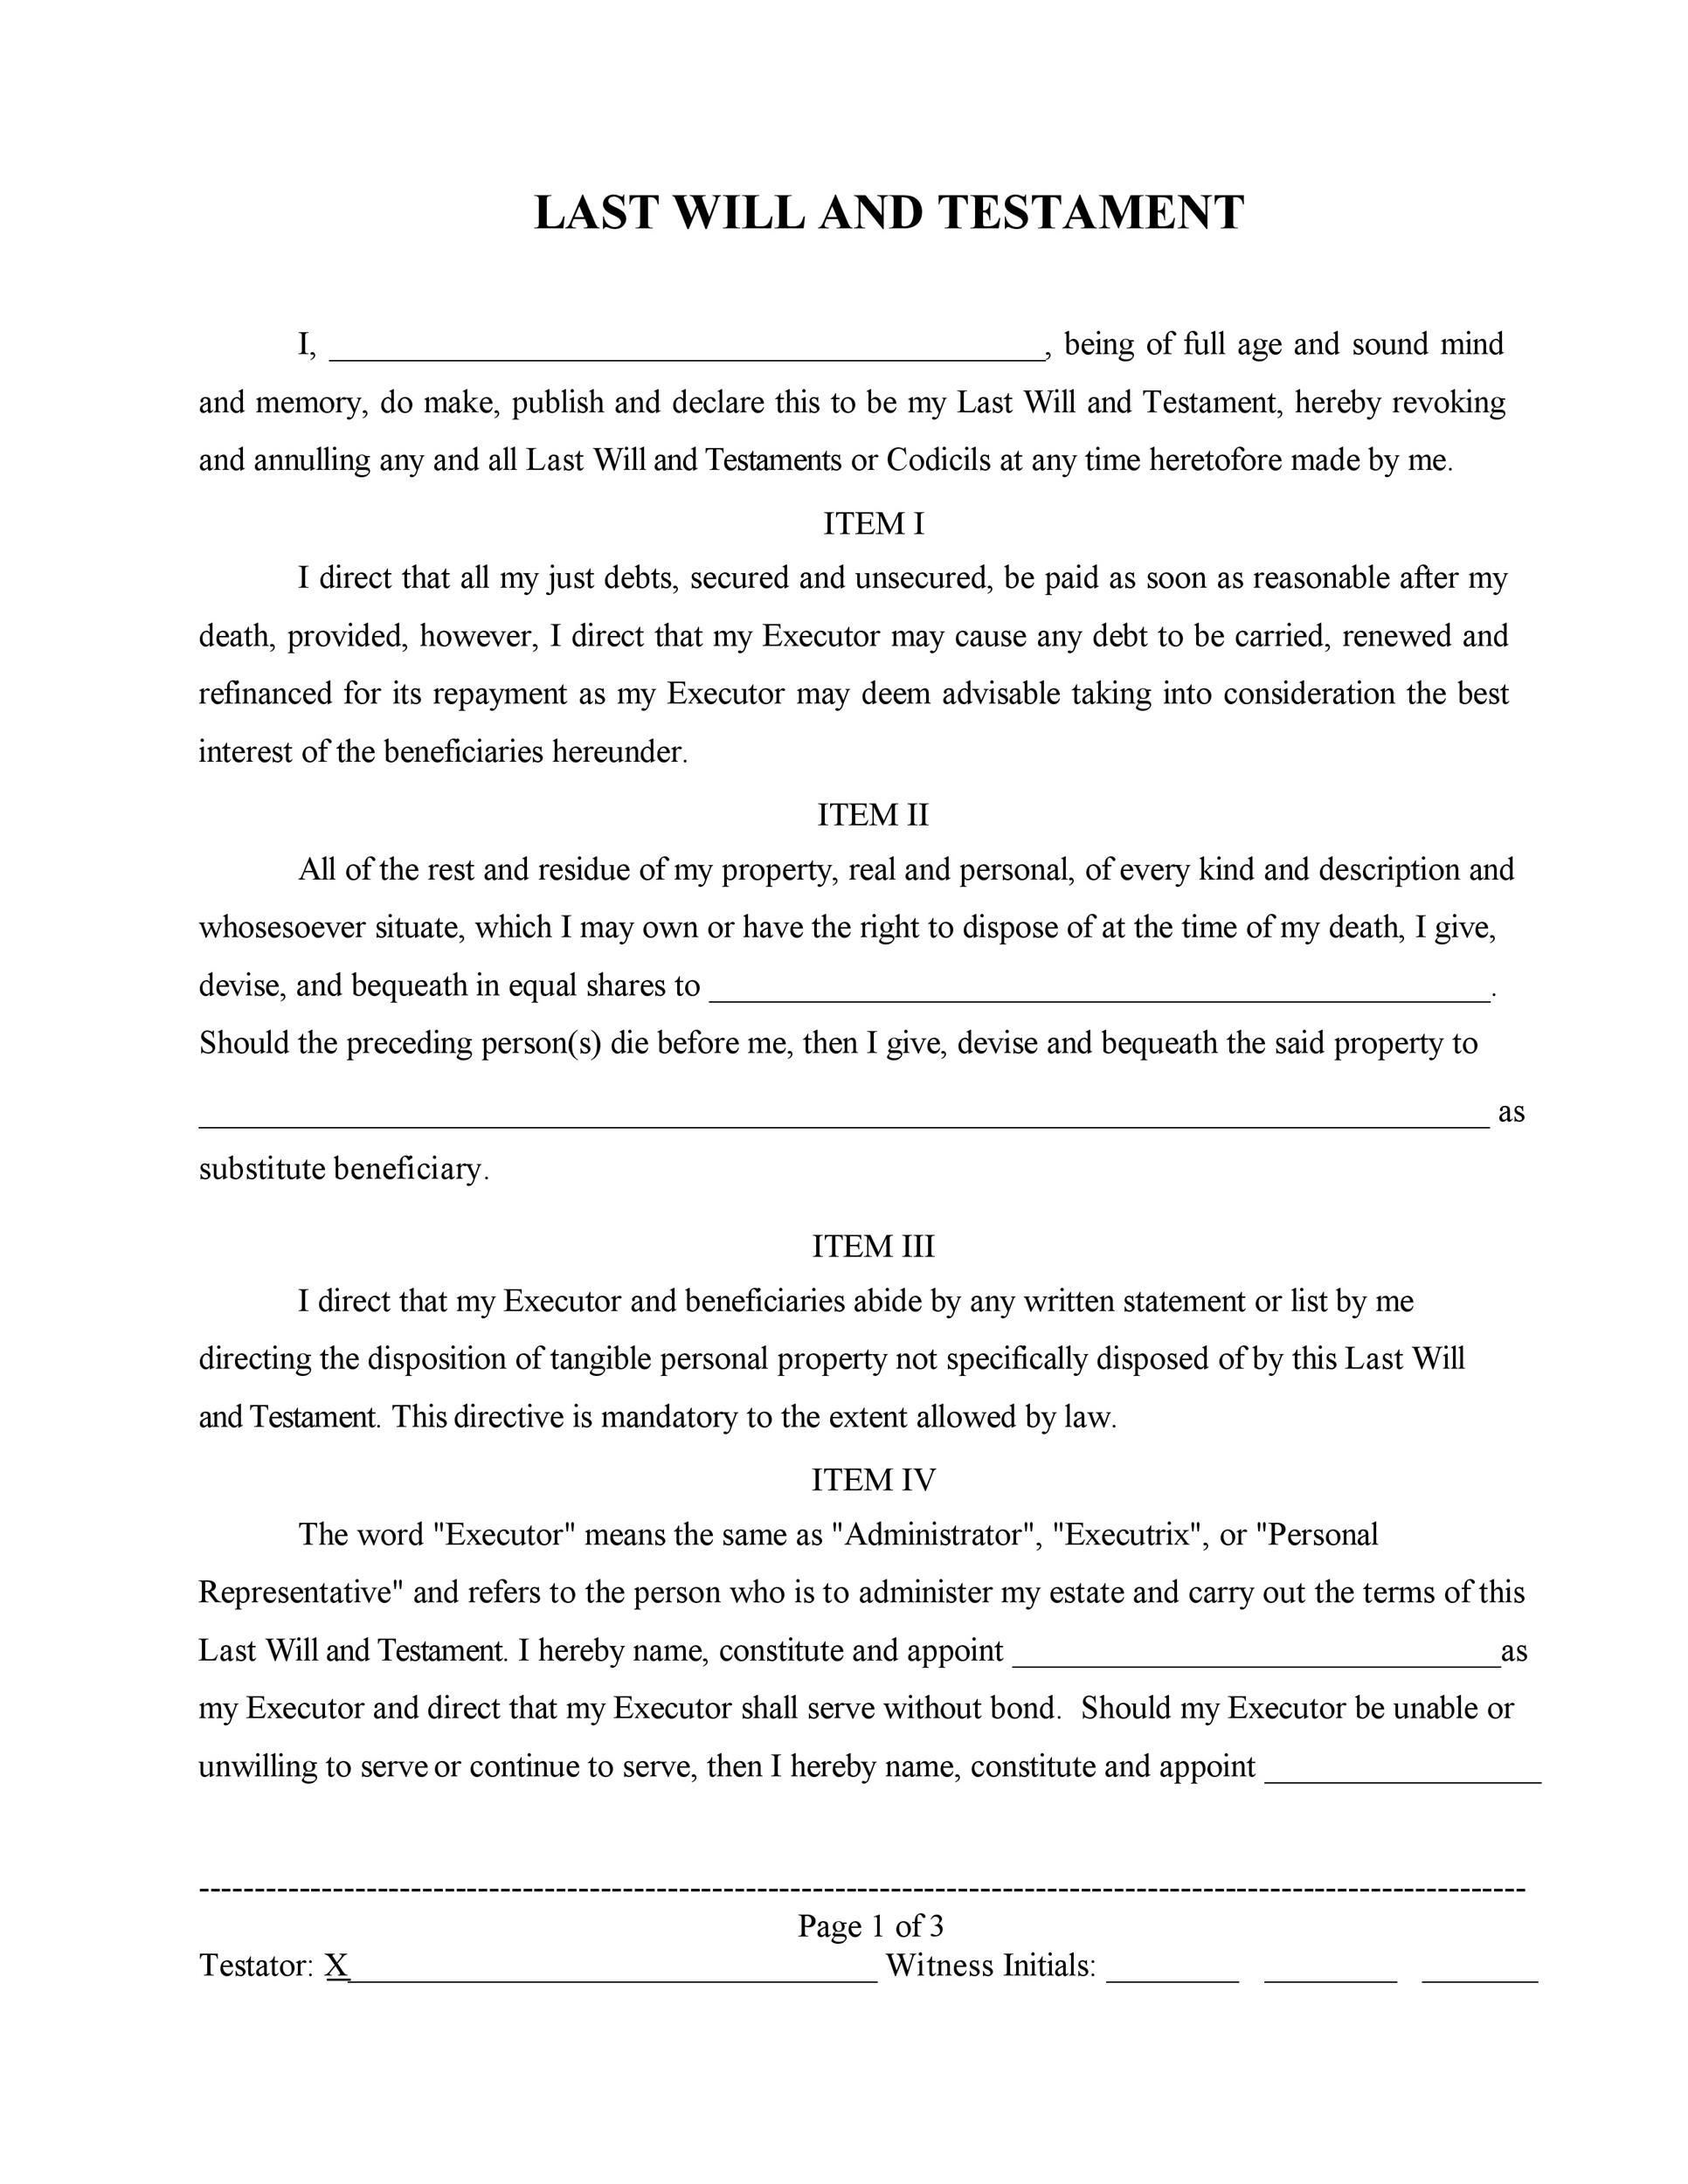 39 last will and testament forms templates template lab for Will template new york